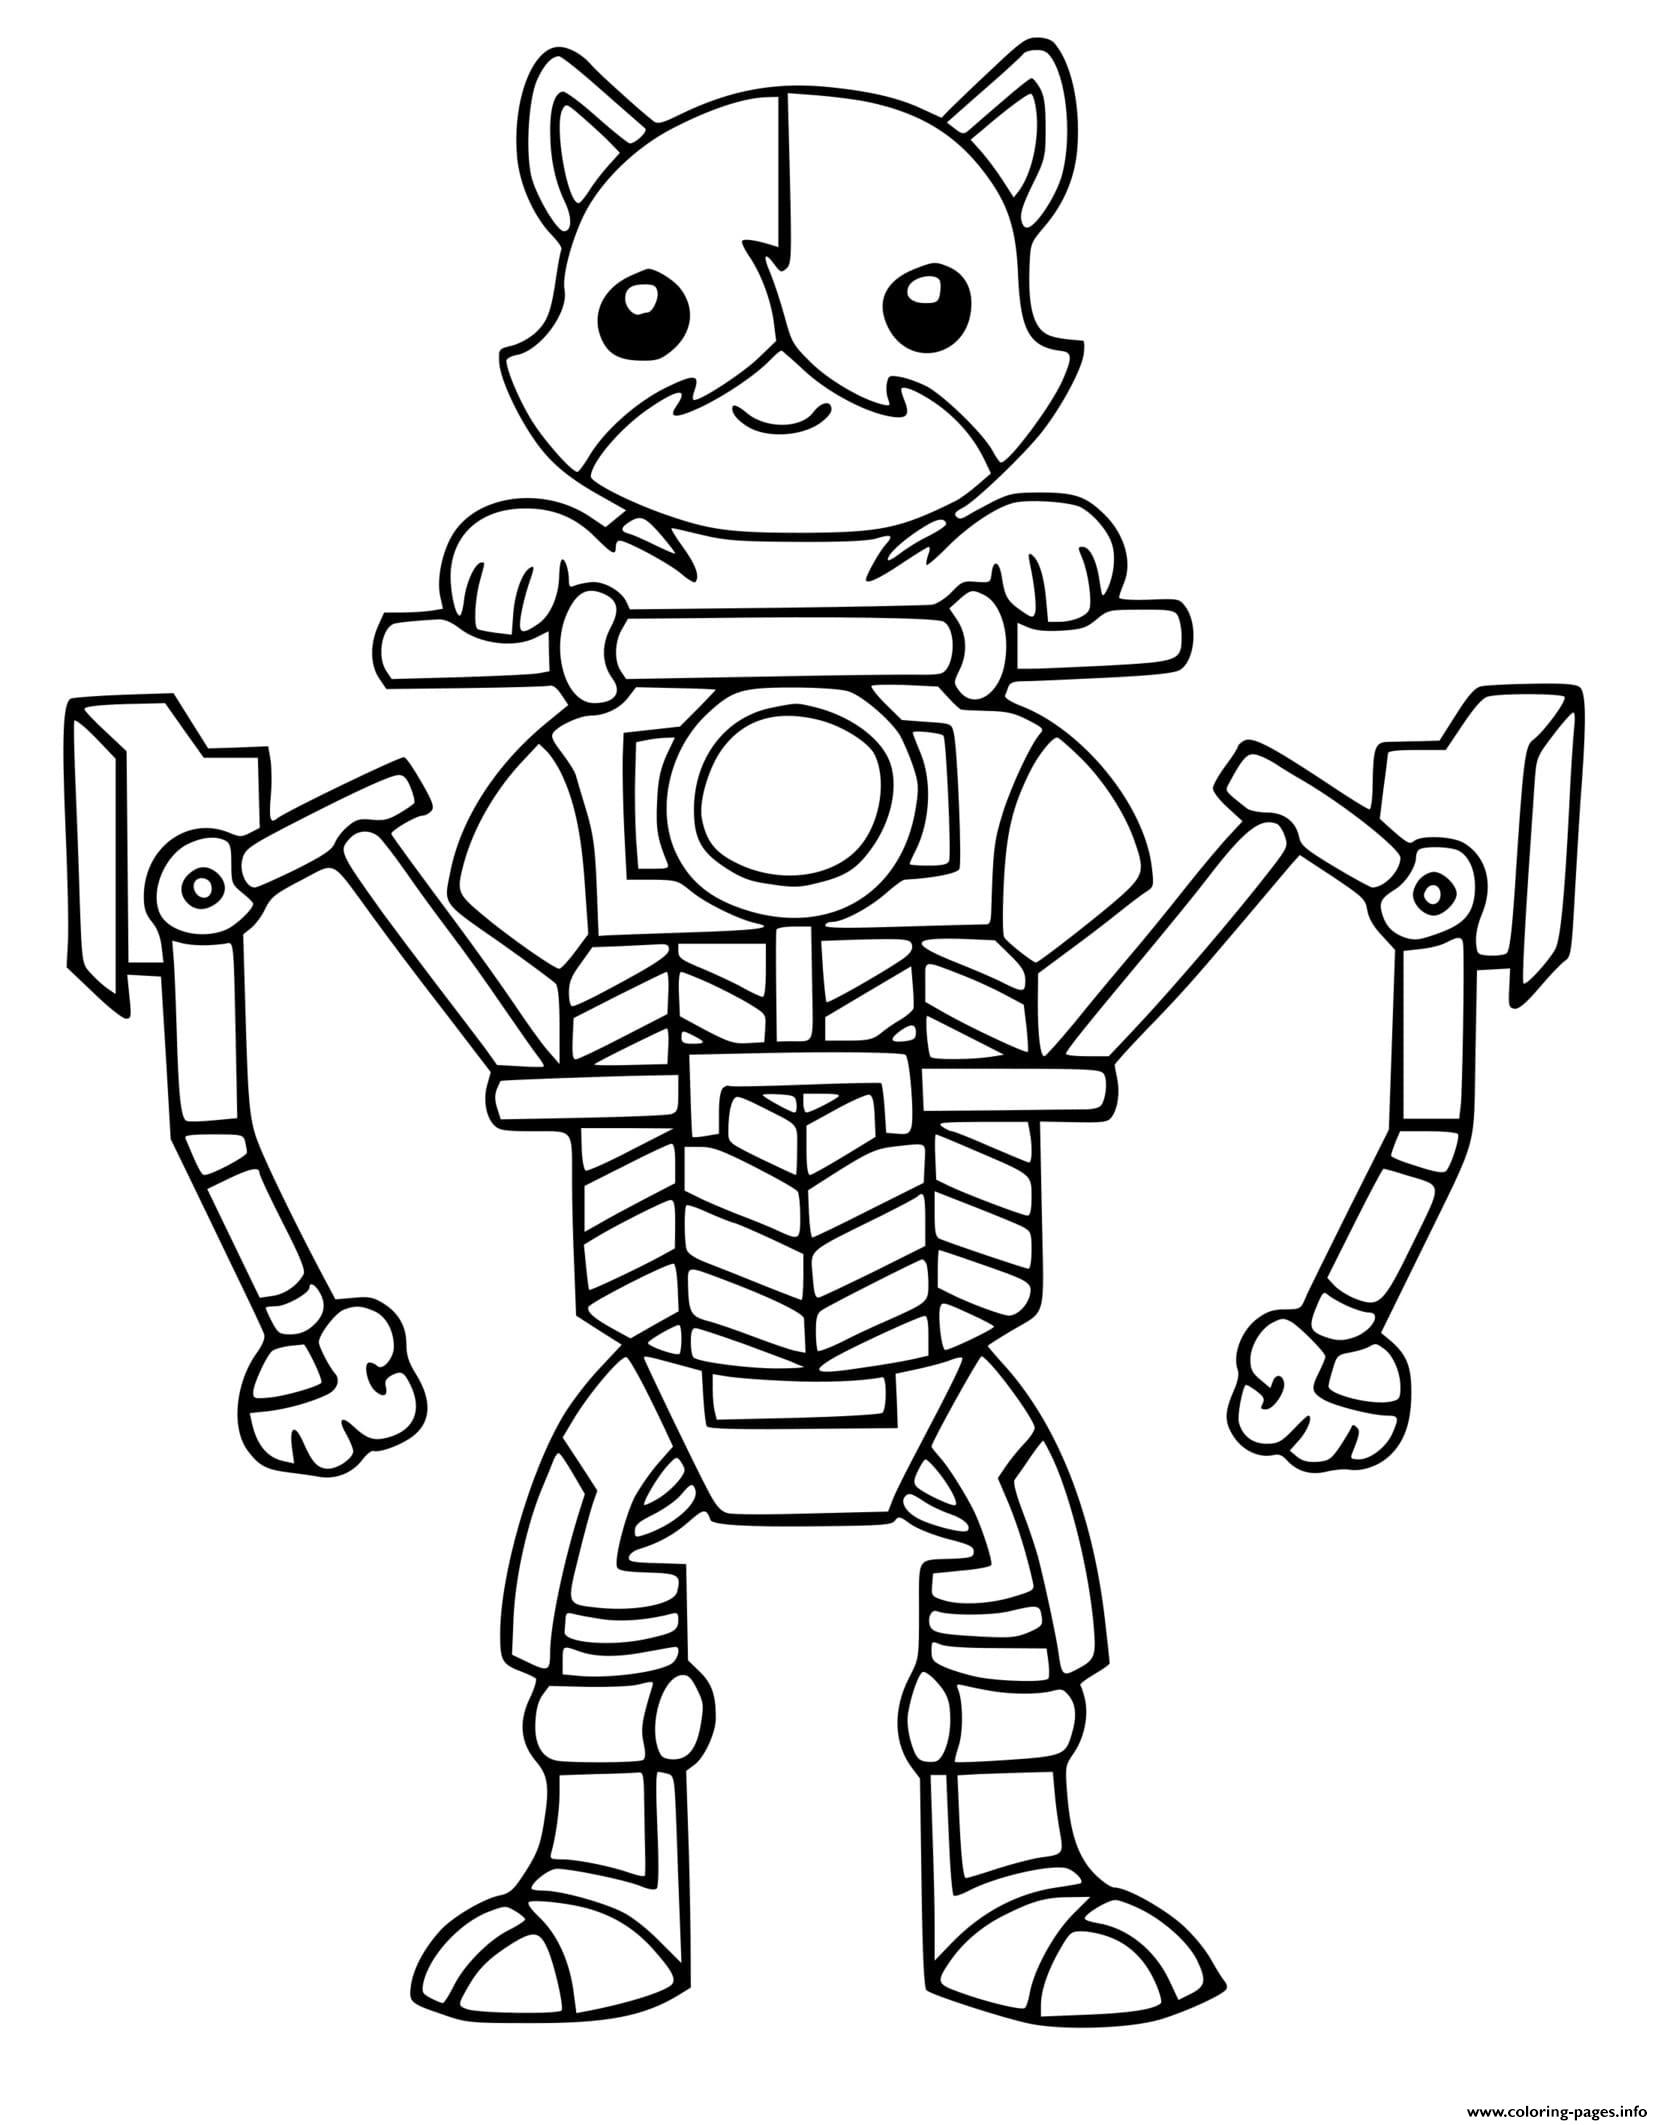 Kit Cat Fortnite Coloring Pages Printable